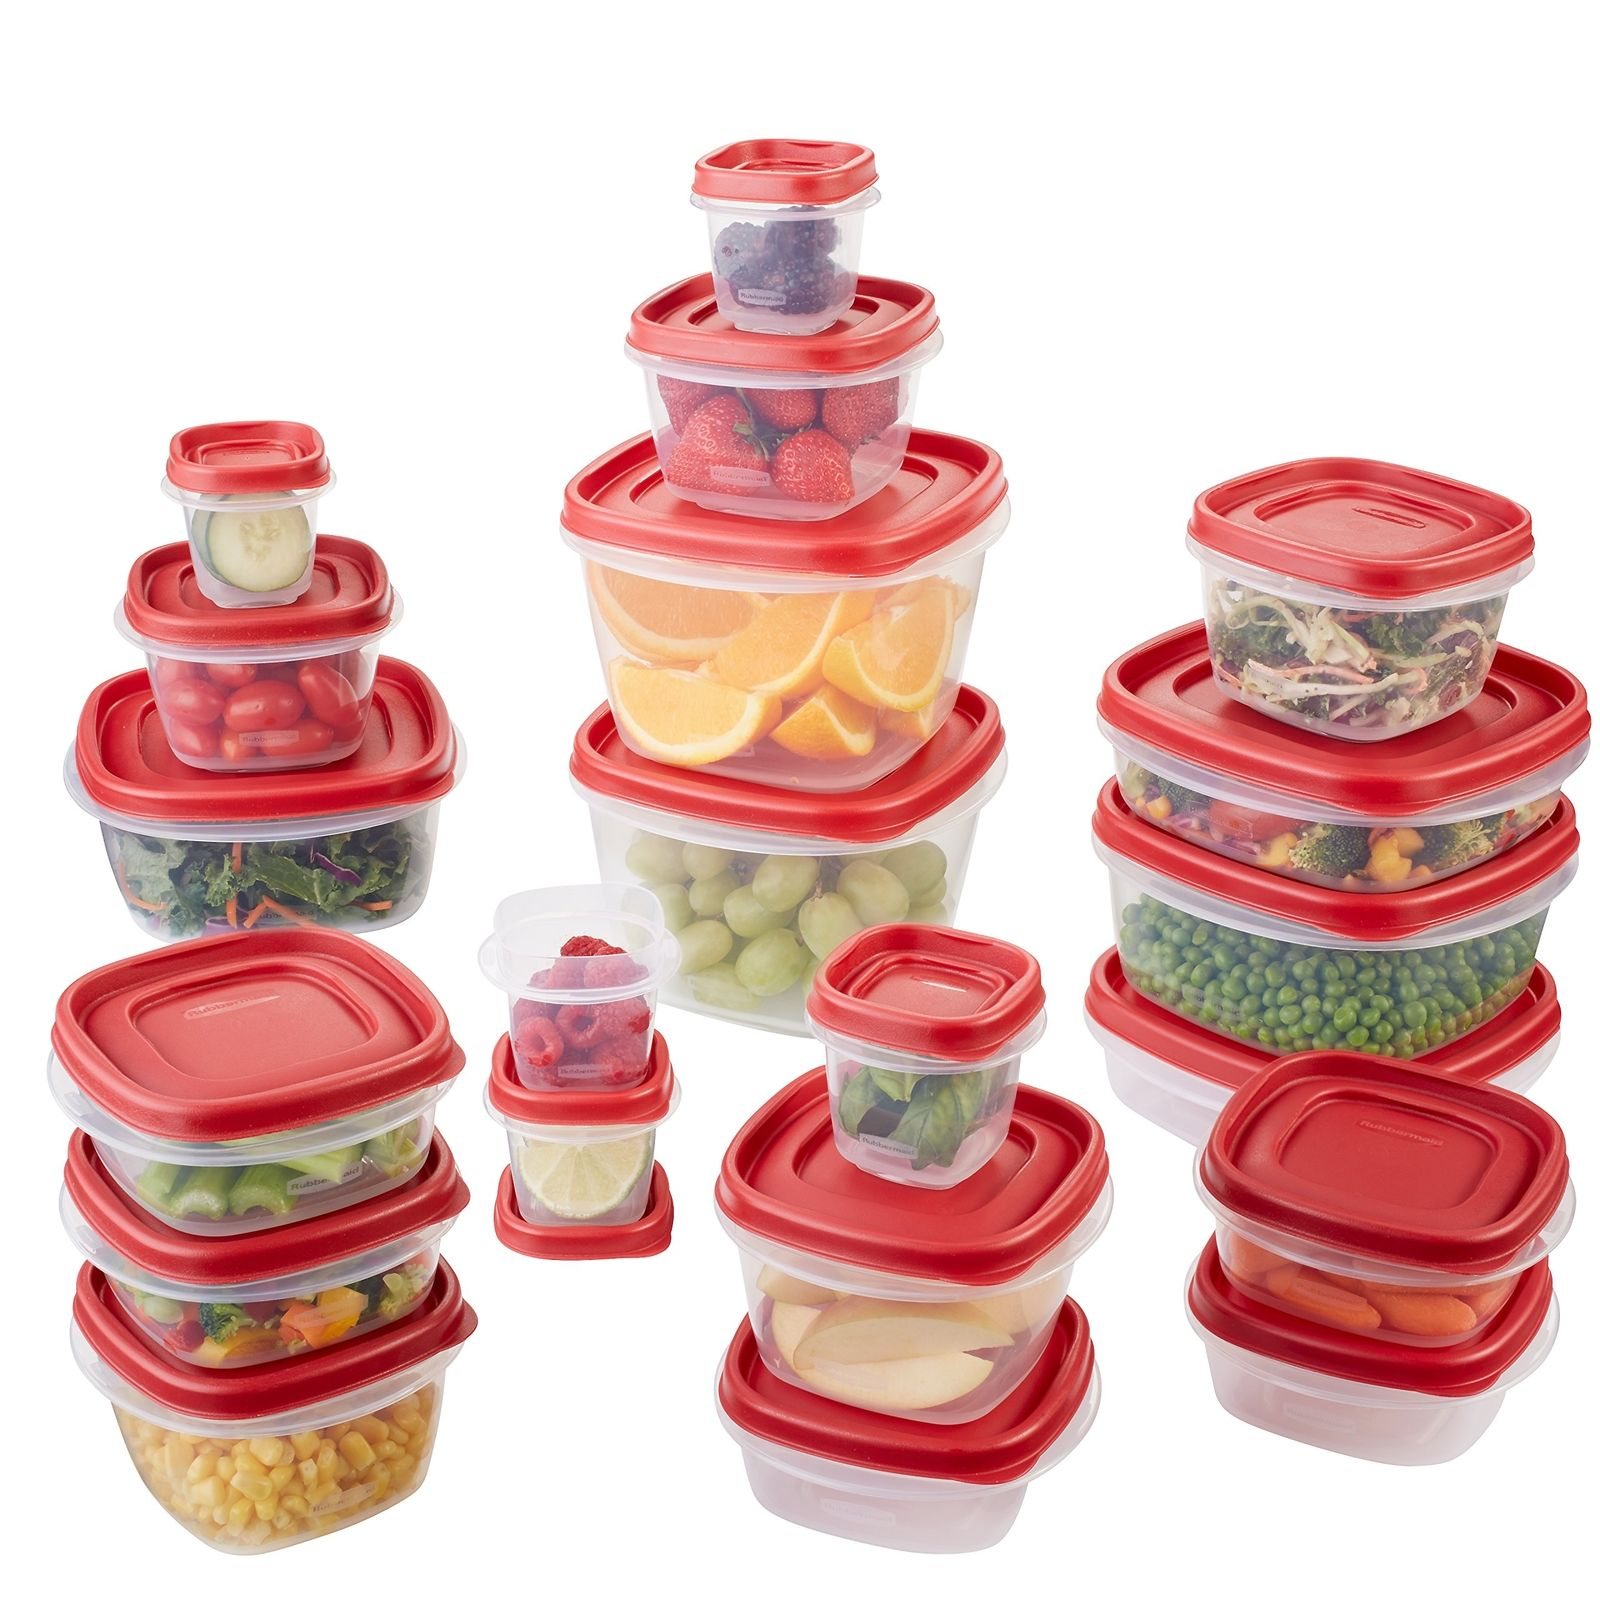 Rubbermaid Easy Find Lid 42-Piece Food Storage Container Set, Red 1